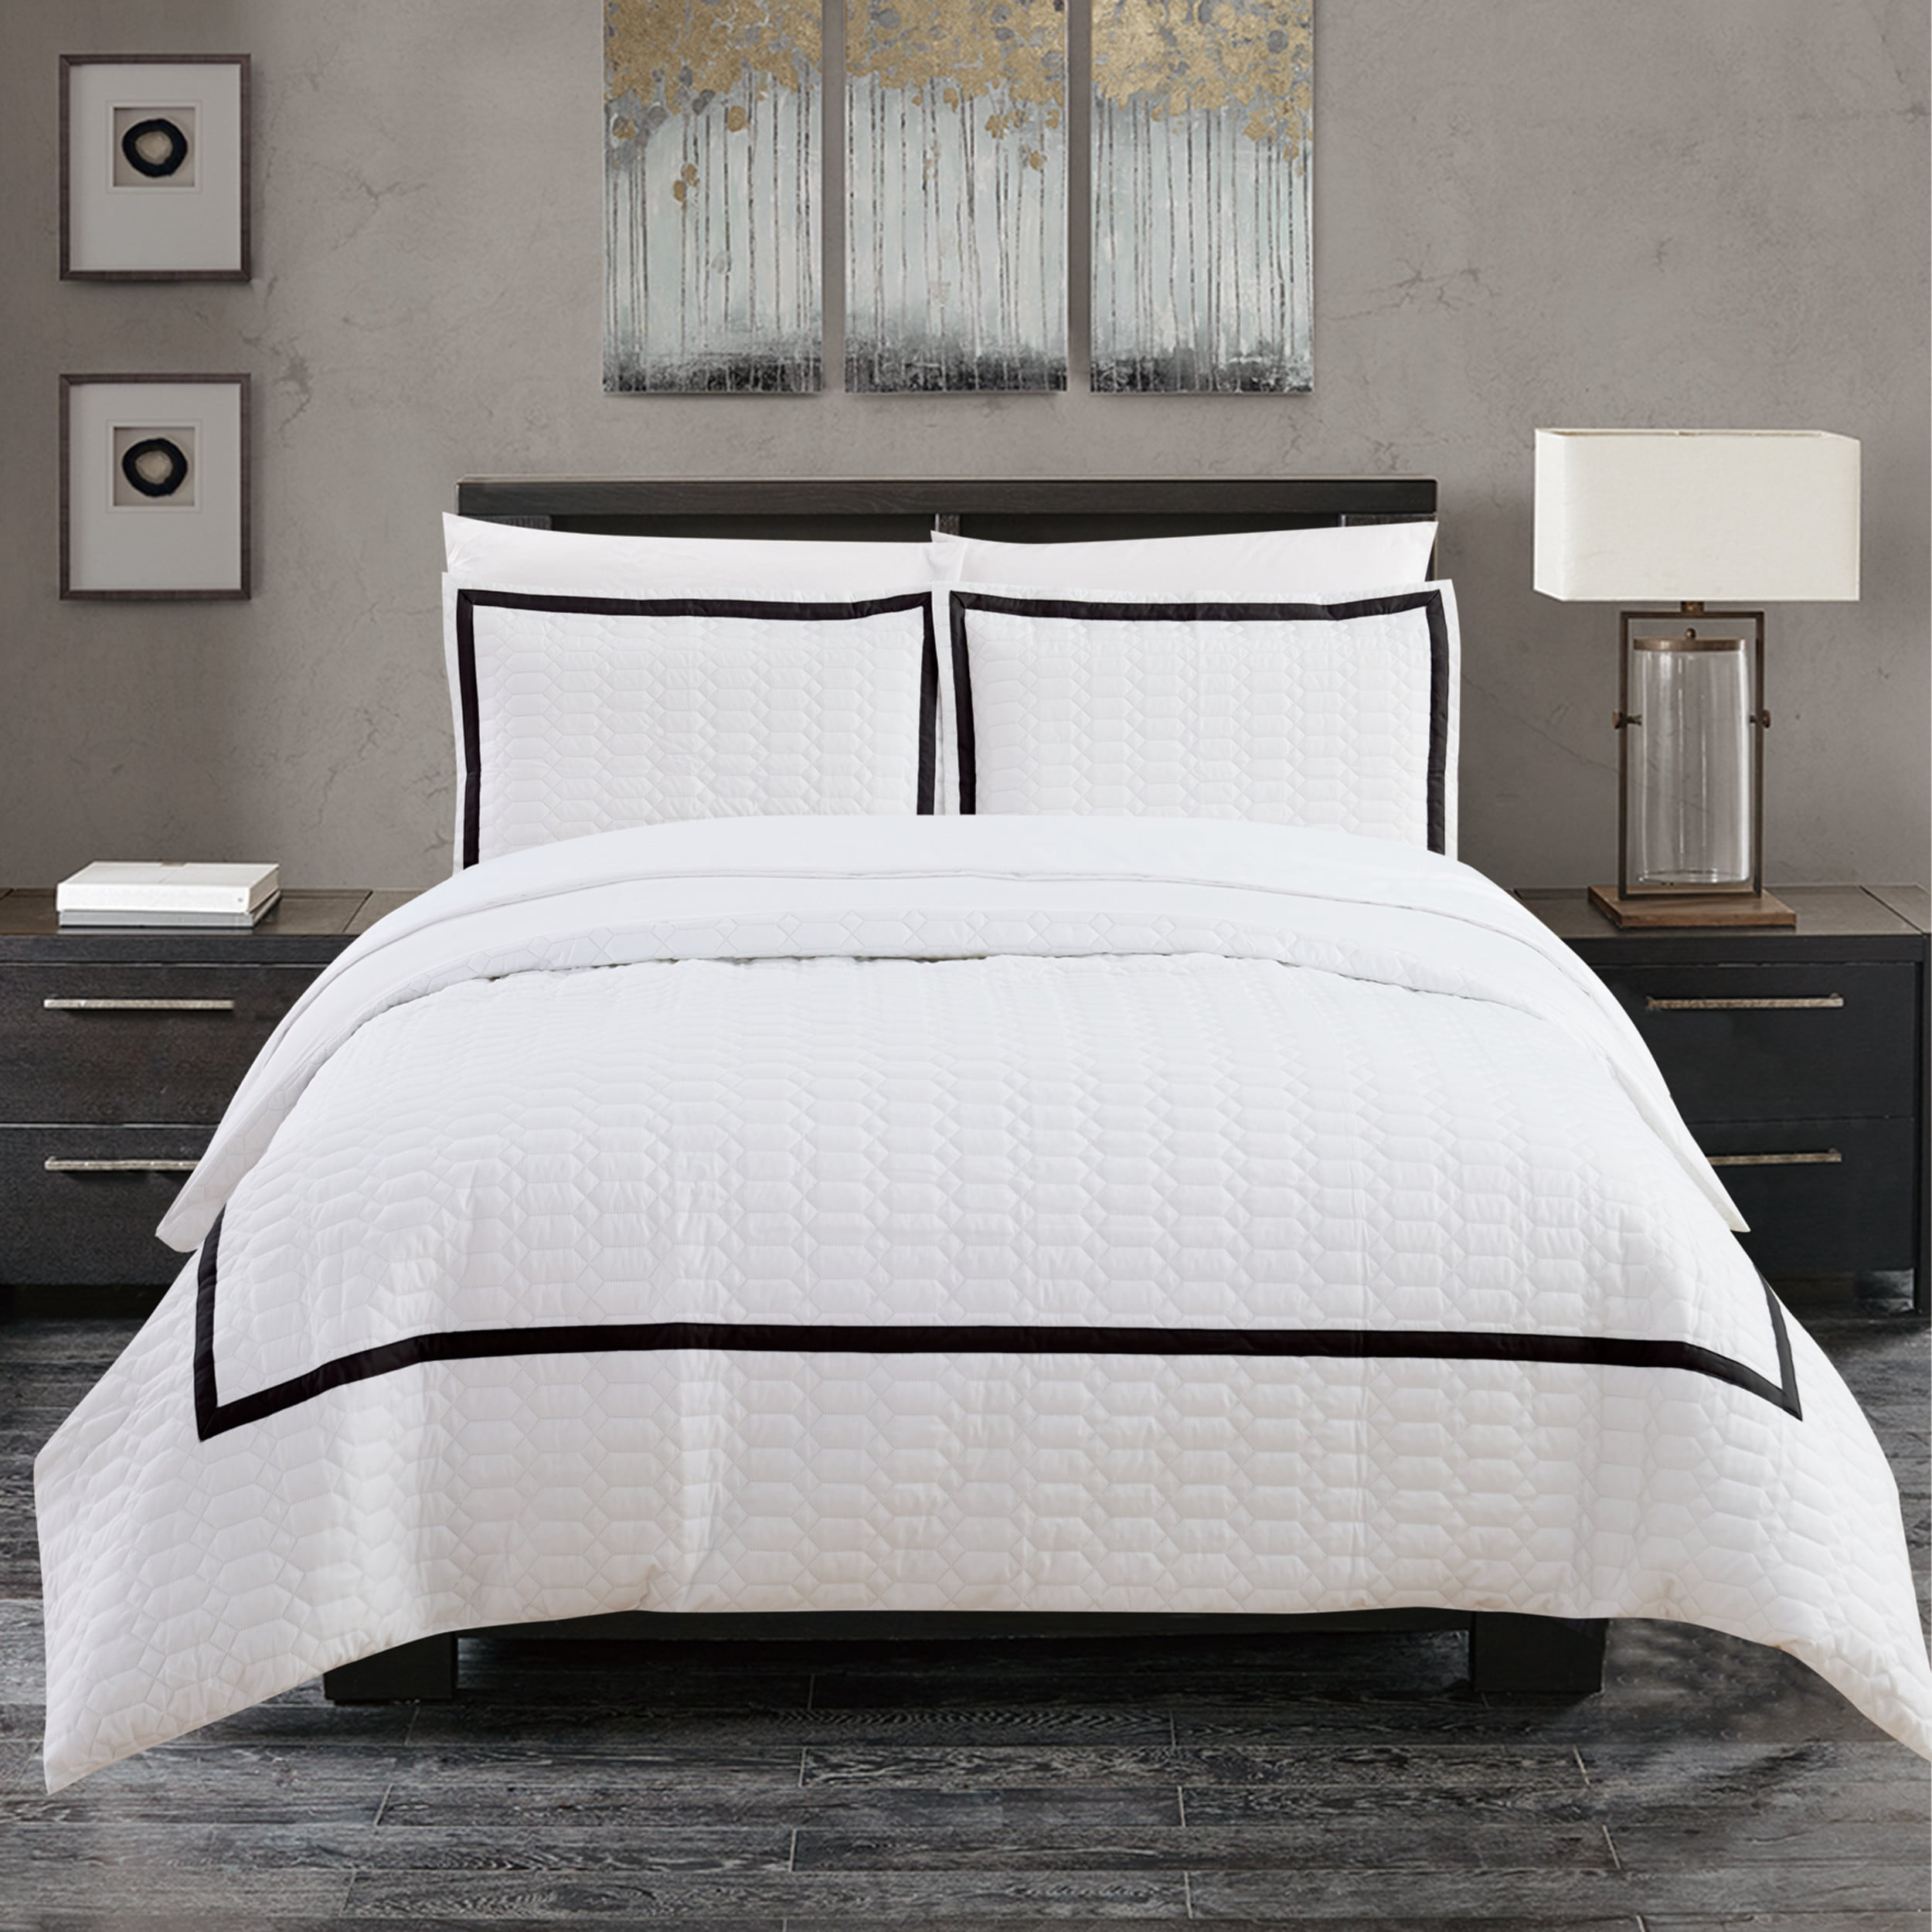 Chic Home Krystel 7 Piece Hotel Collection Banded Print Duvet Cover And Sheet Set On Free Shipping Today 18220794